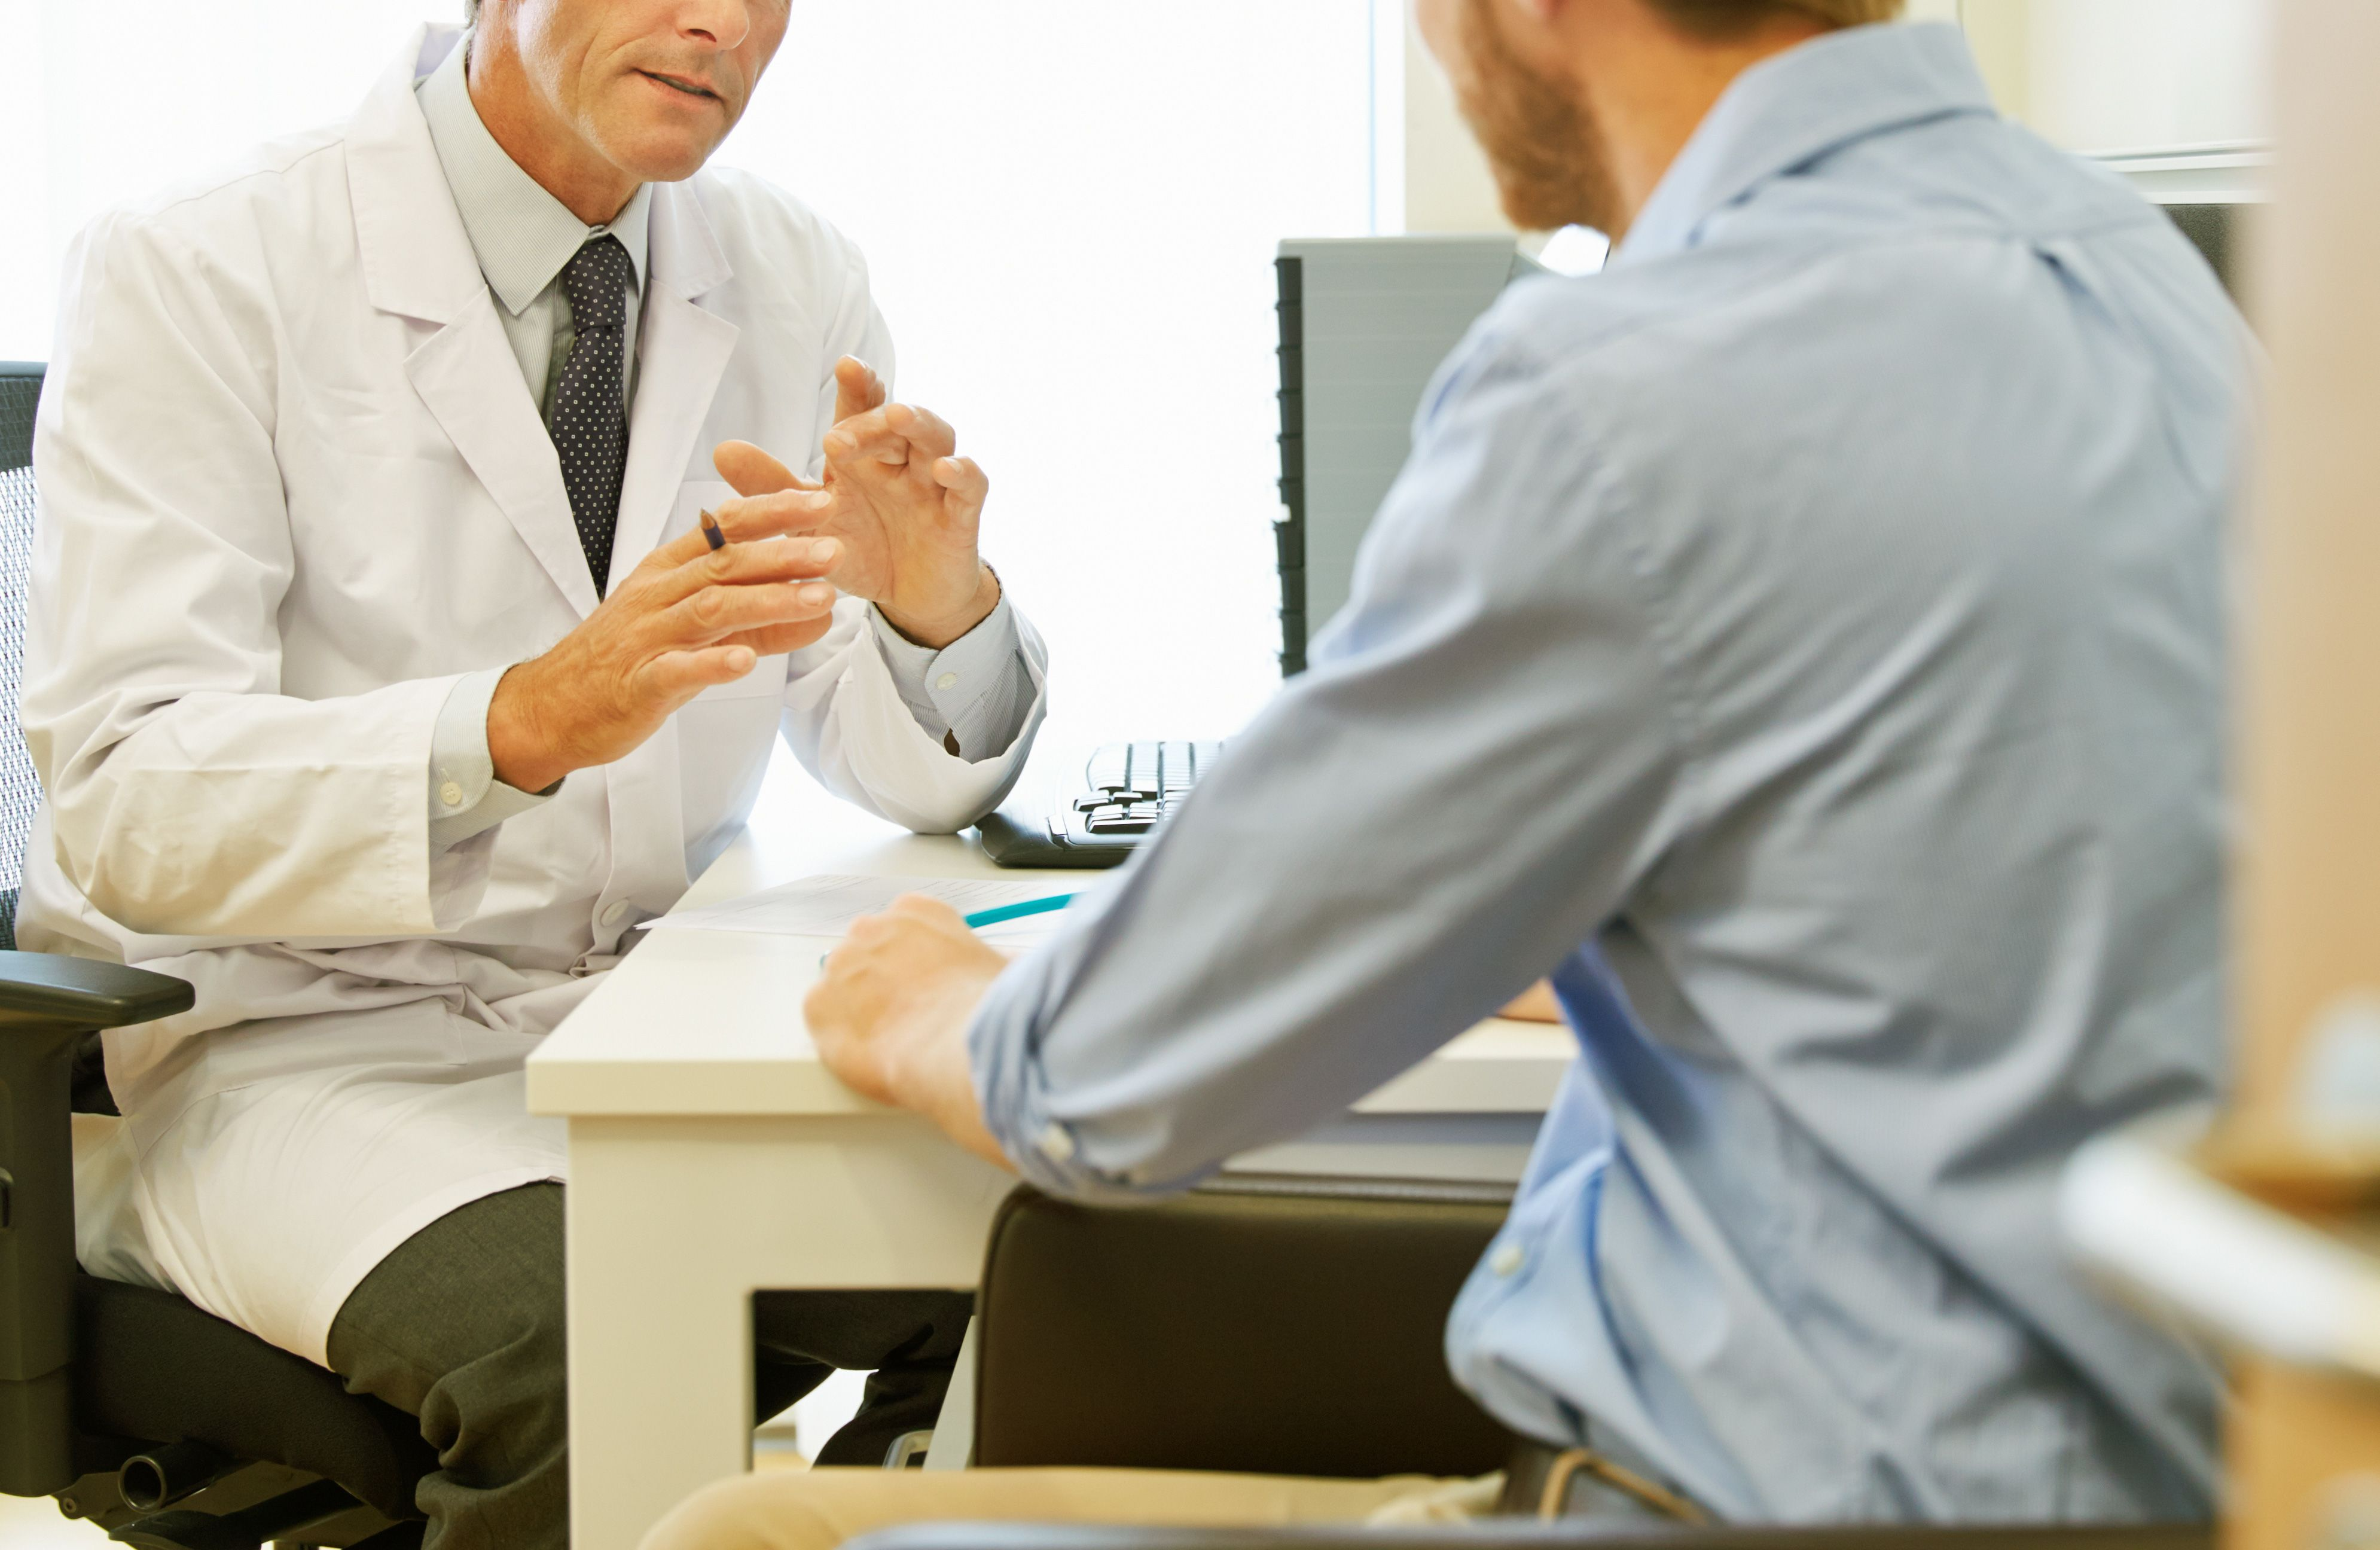 Doctor discusses risk with patient